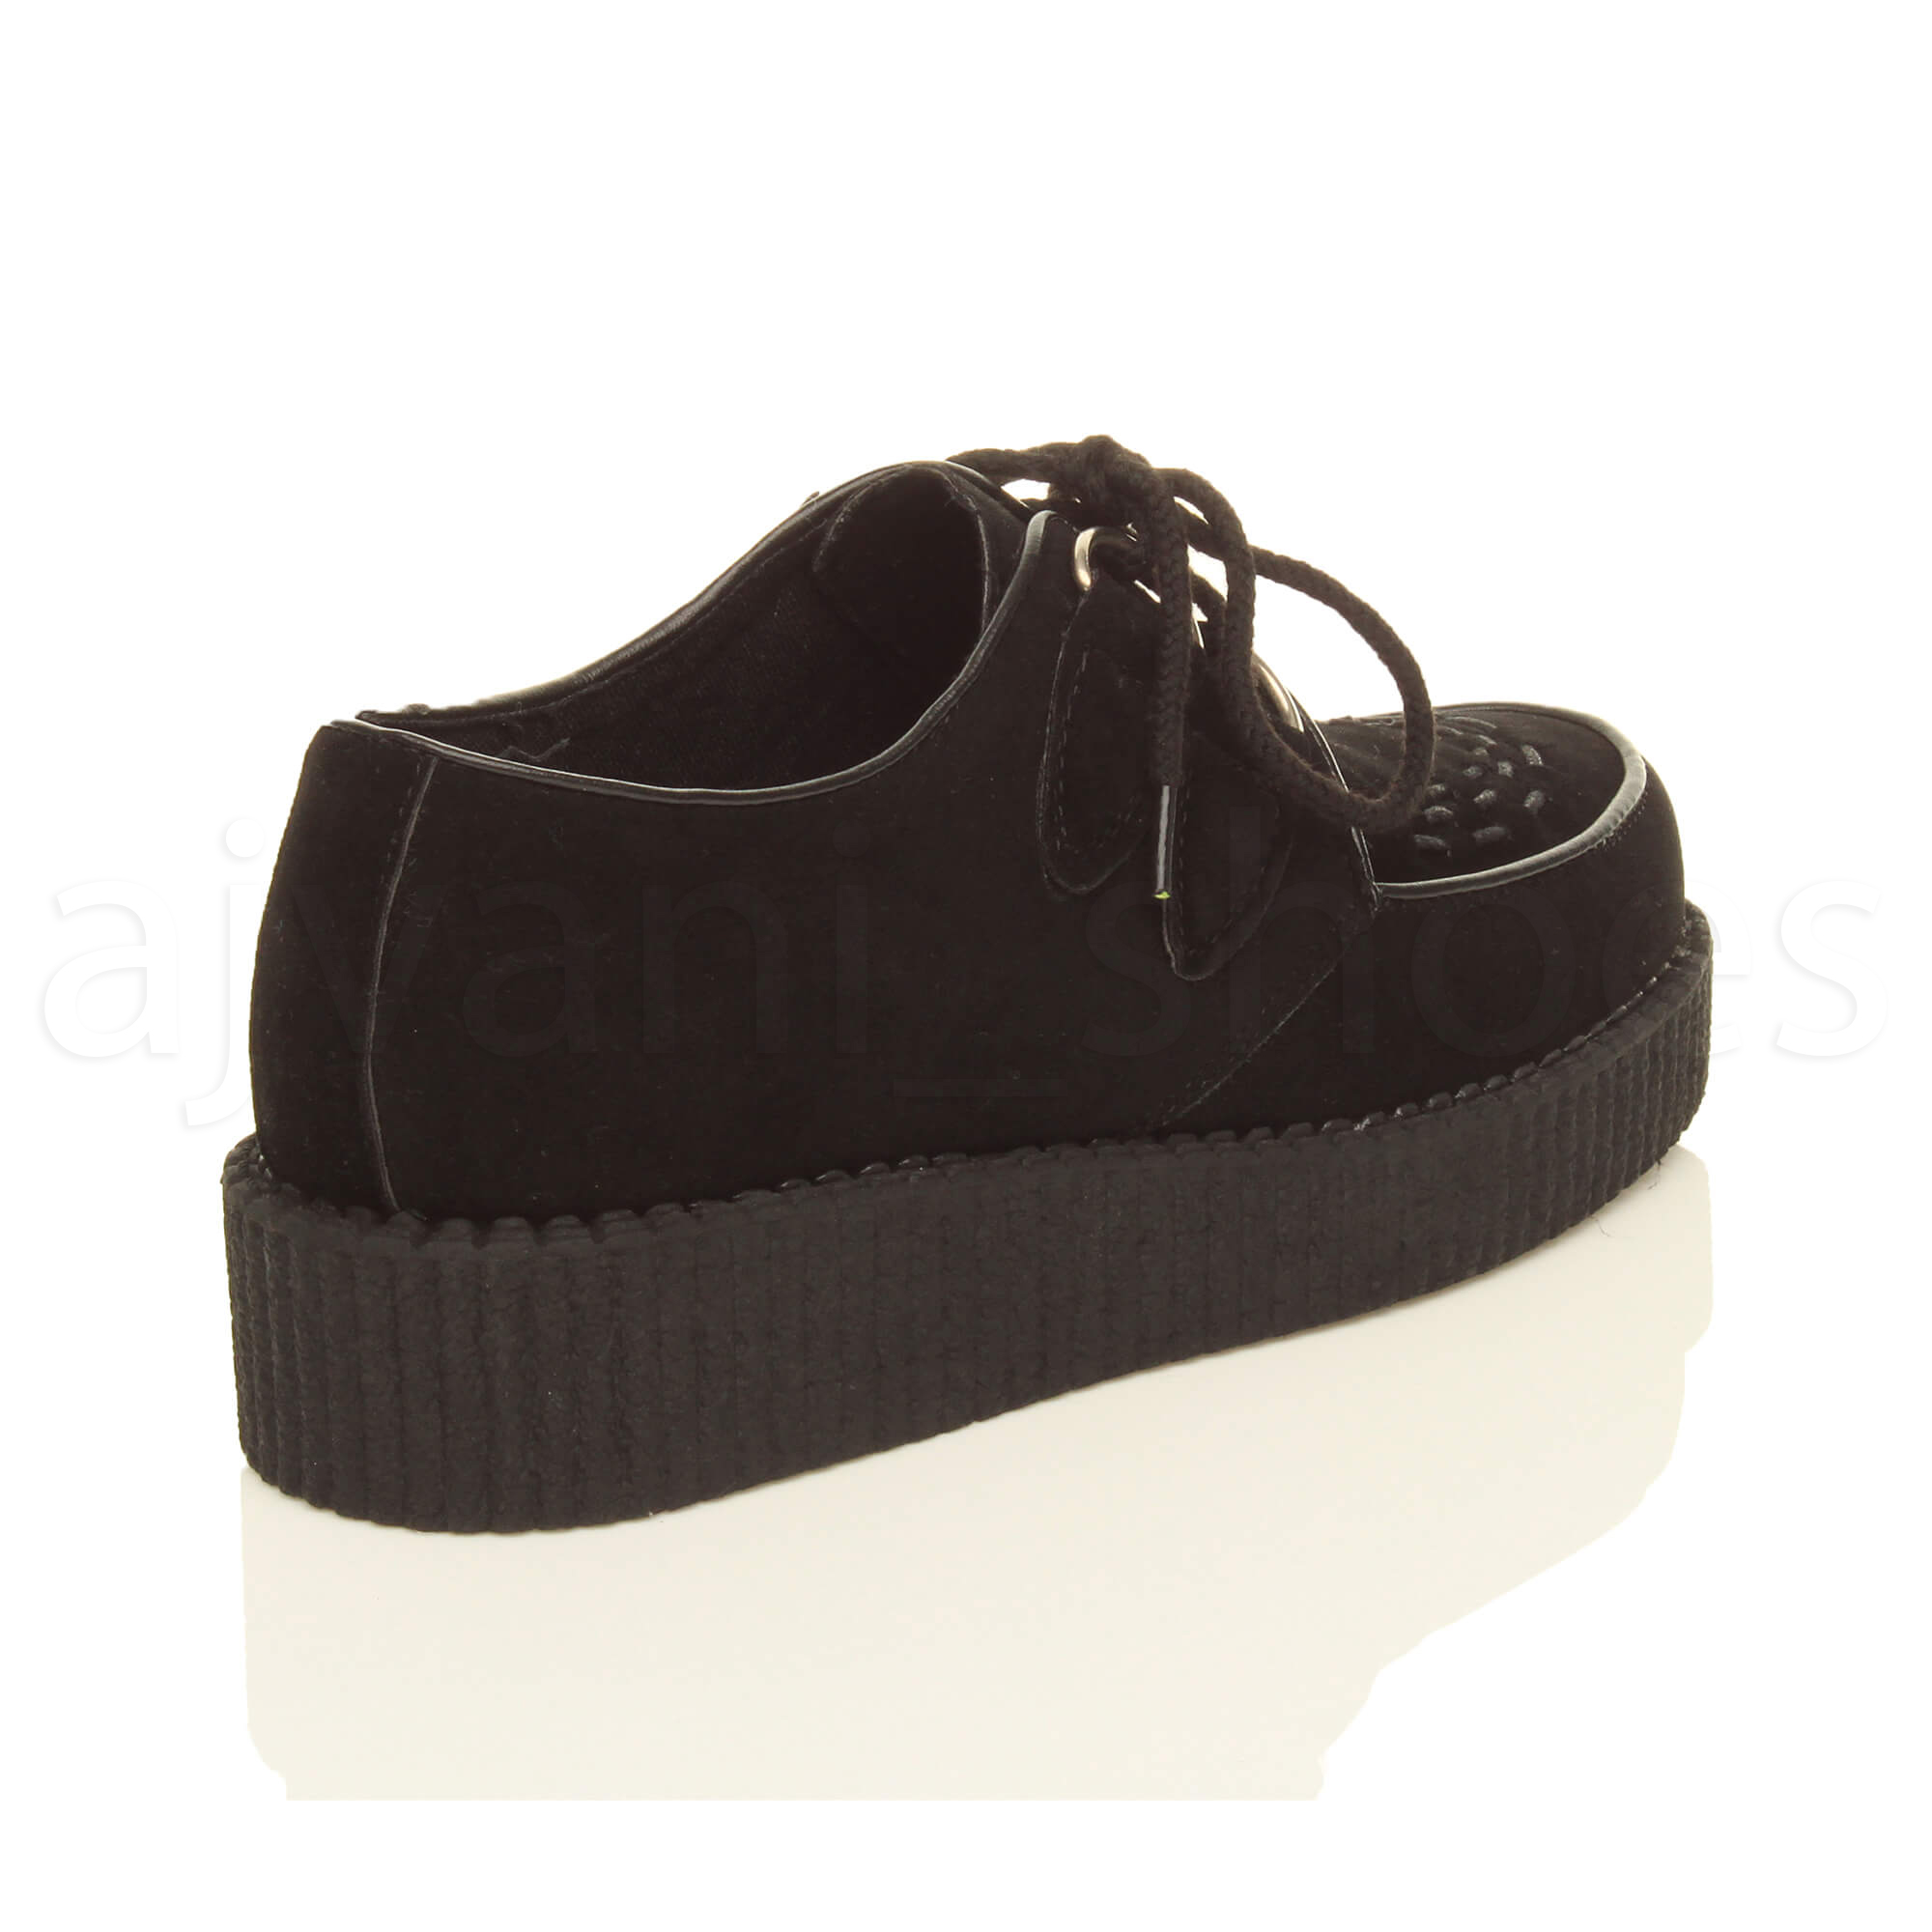 MENS-PLATFORM-WEDGE-LACE-UP-GOTH-PUNK-BROTHEL-CREEPERS-BEETLE-CRUSHERS-SHOES thumbnail 13